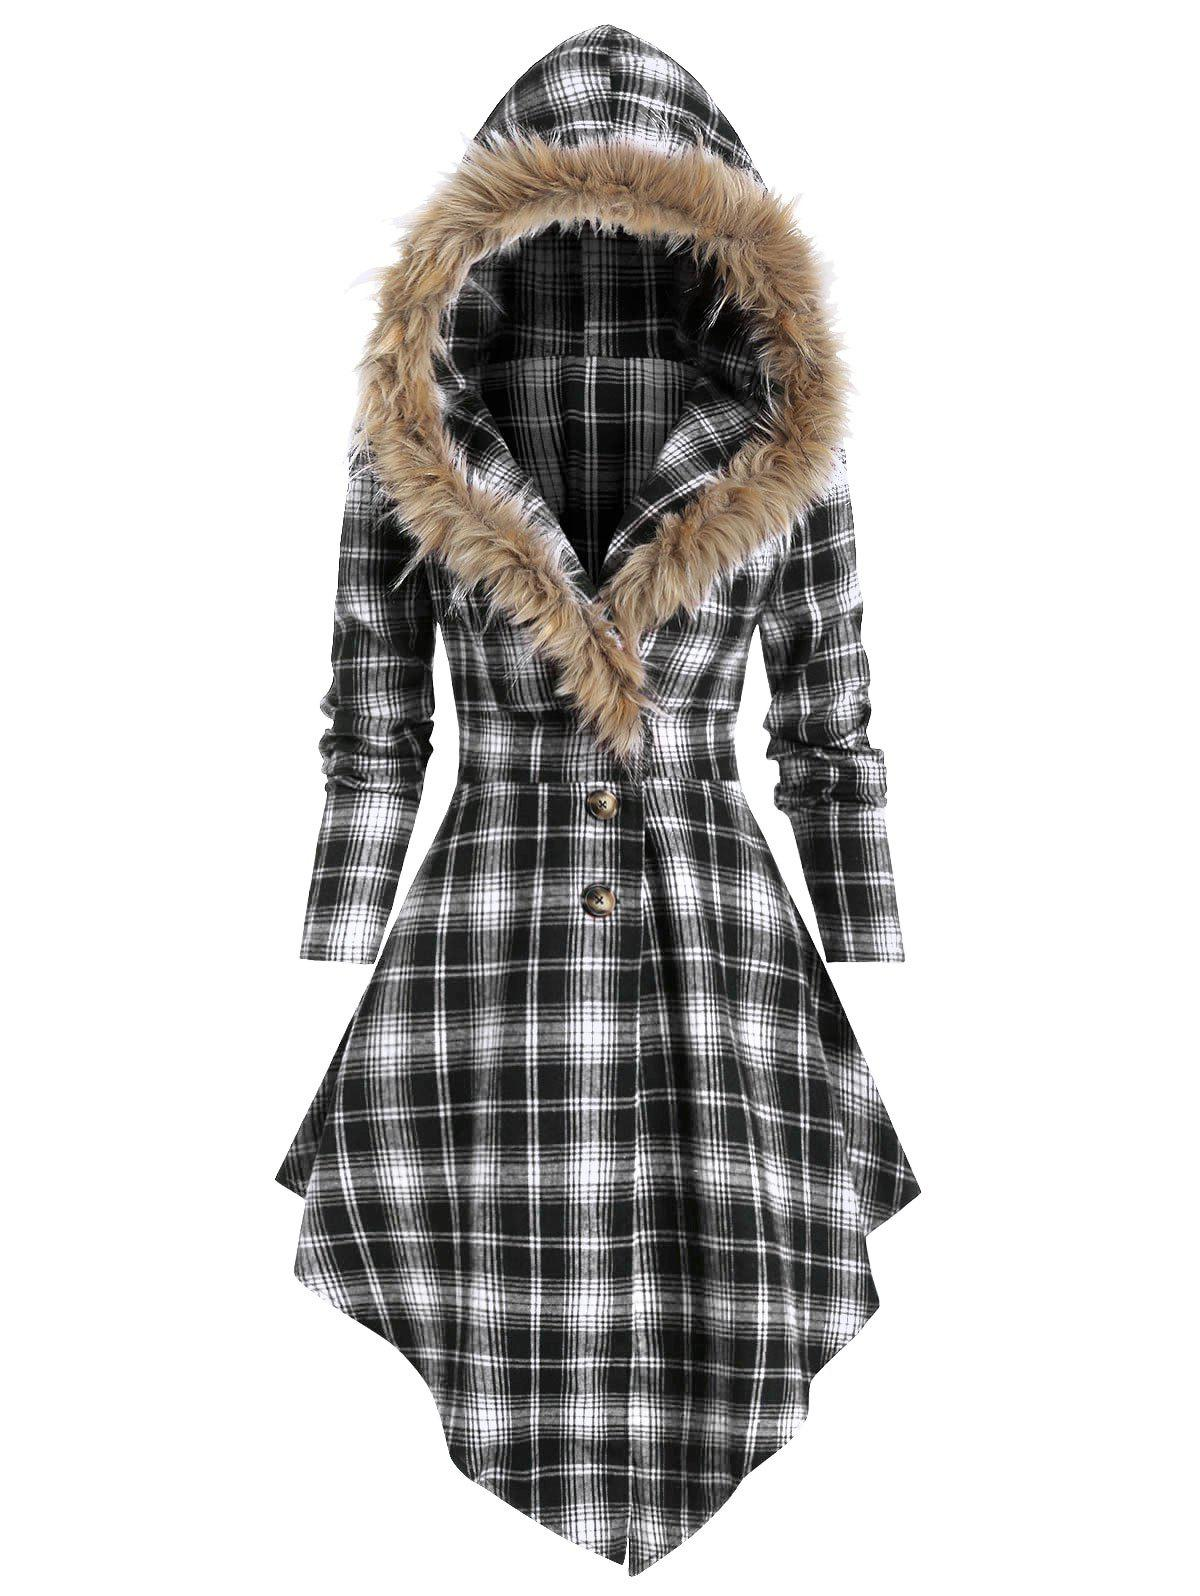 New Plaid Print Lace-up Skirted Coat with Faux Fur Hood